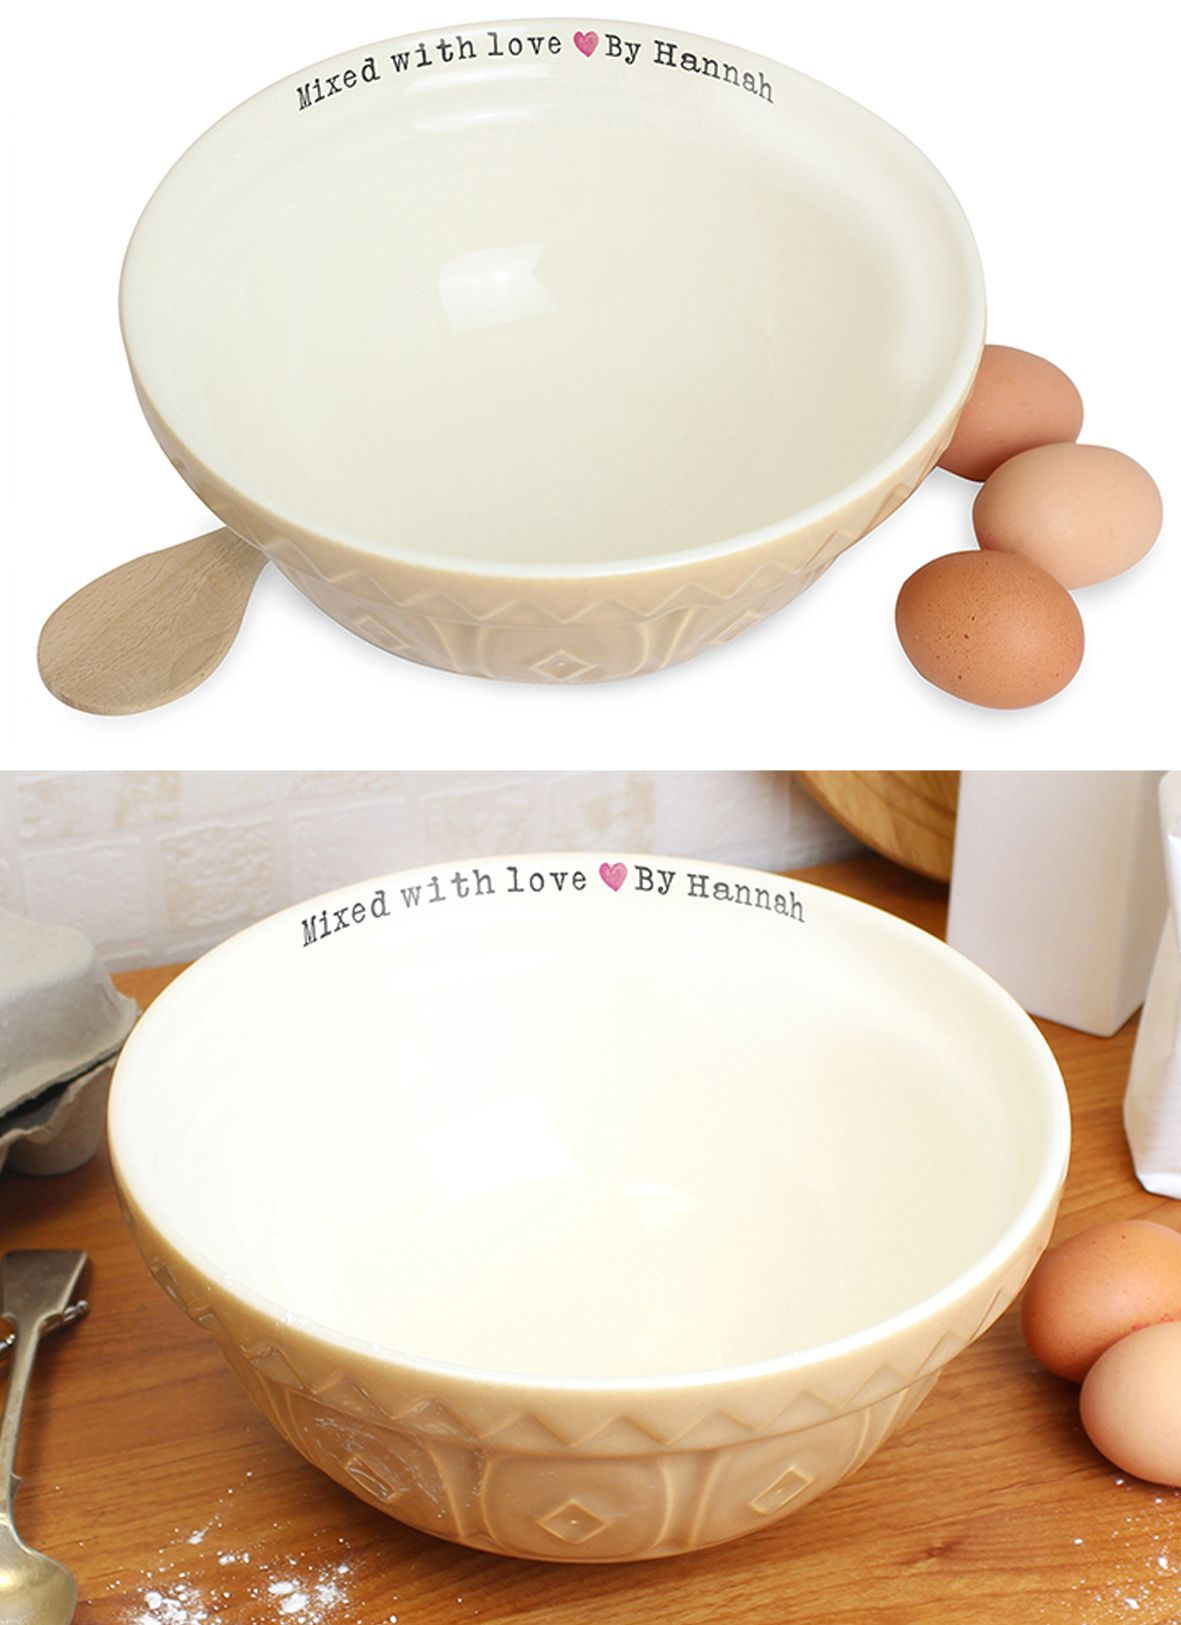 Personalised ceramic mixing bowl kitchenware | gift idea for cook cooking baking | PhotoFairytales